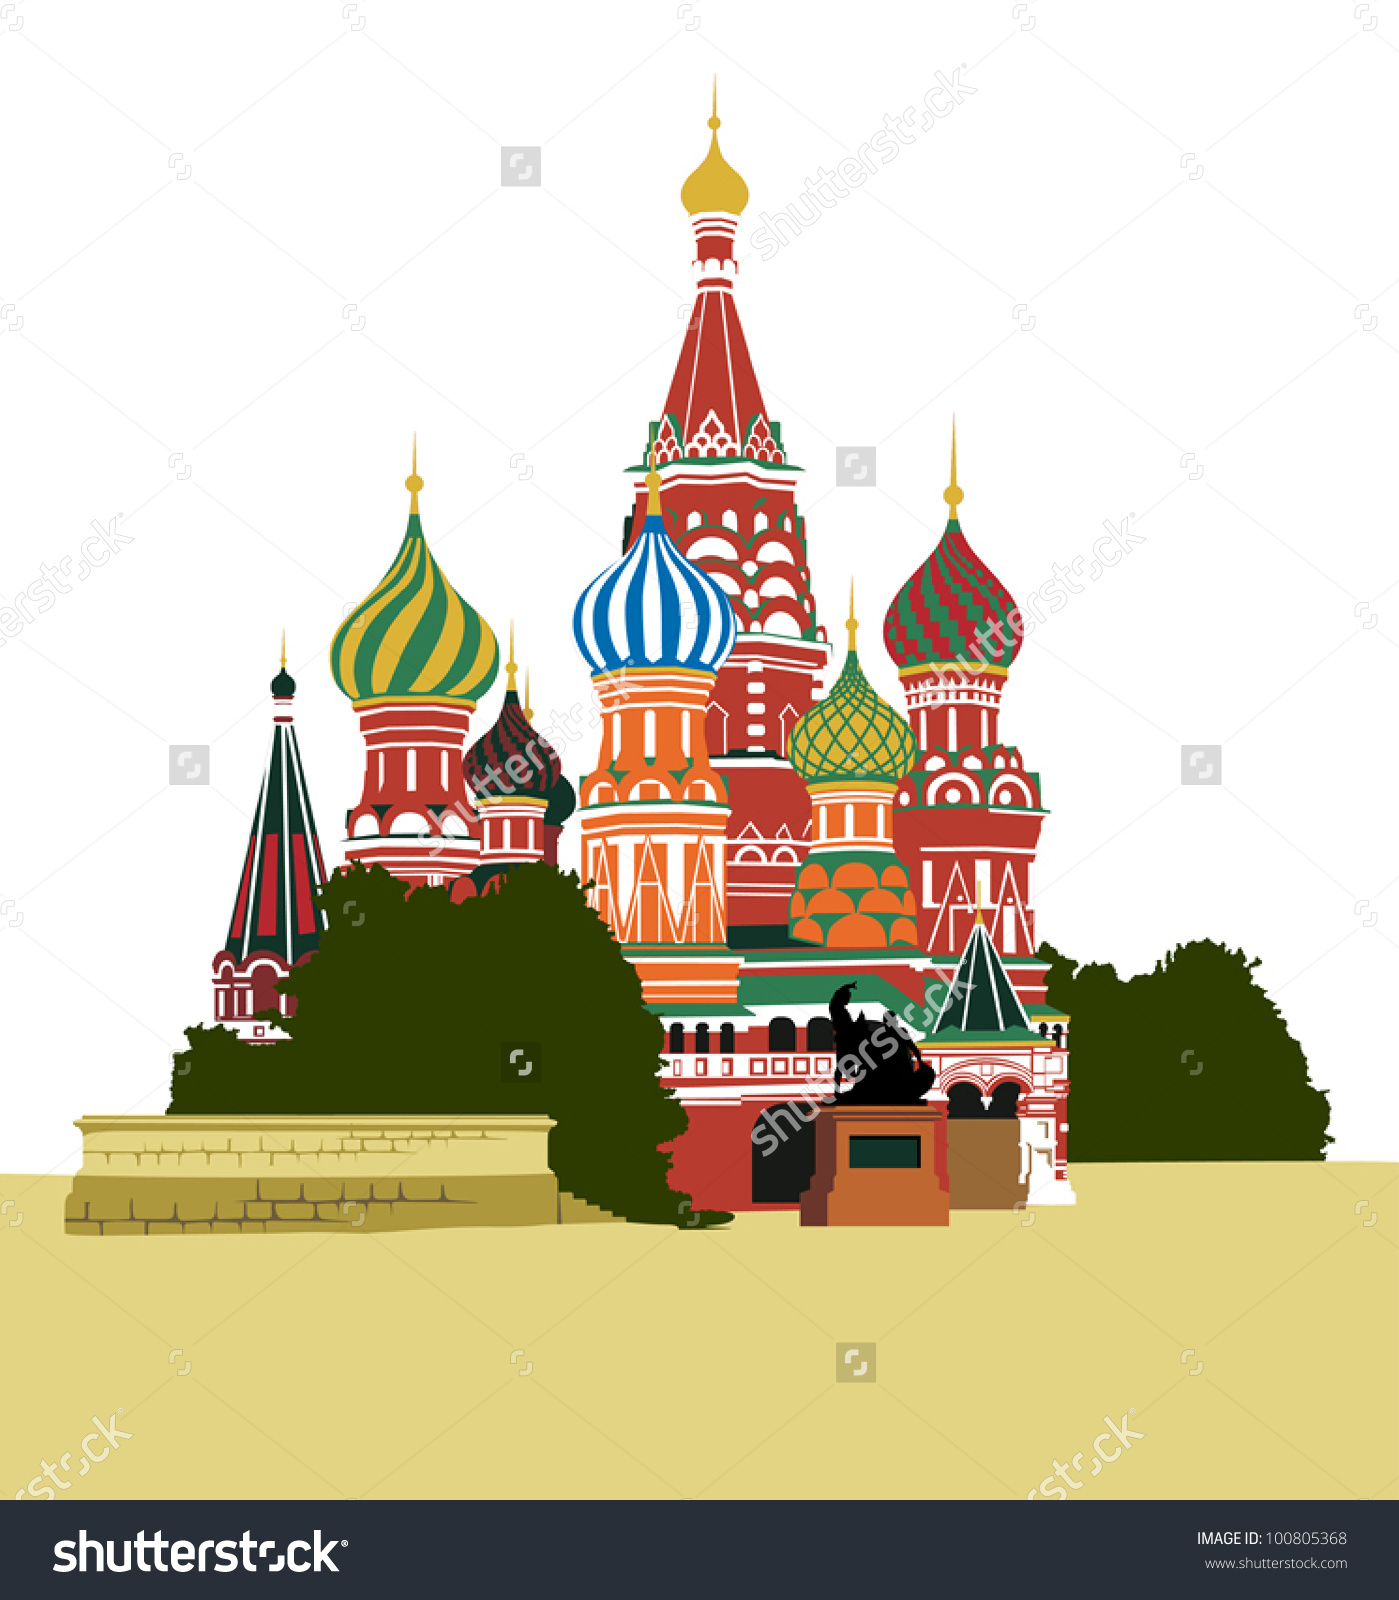 St basil's cathedral clipart.